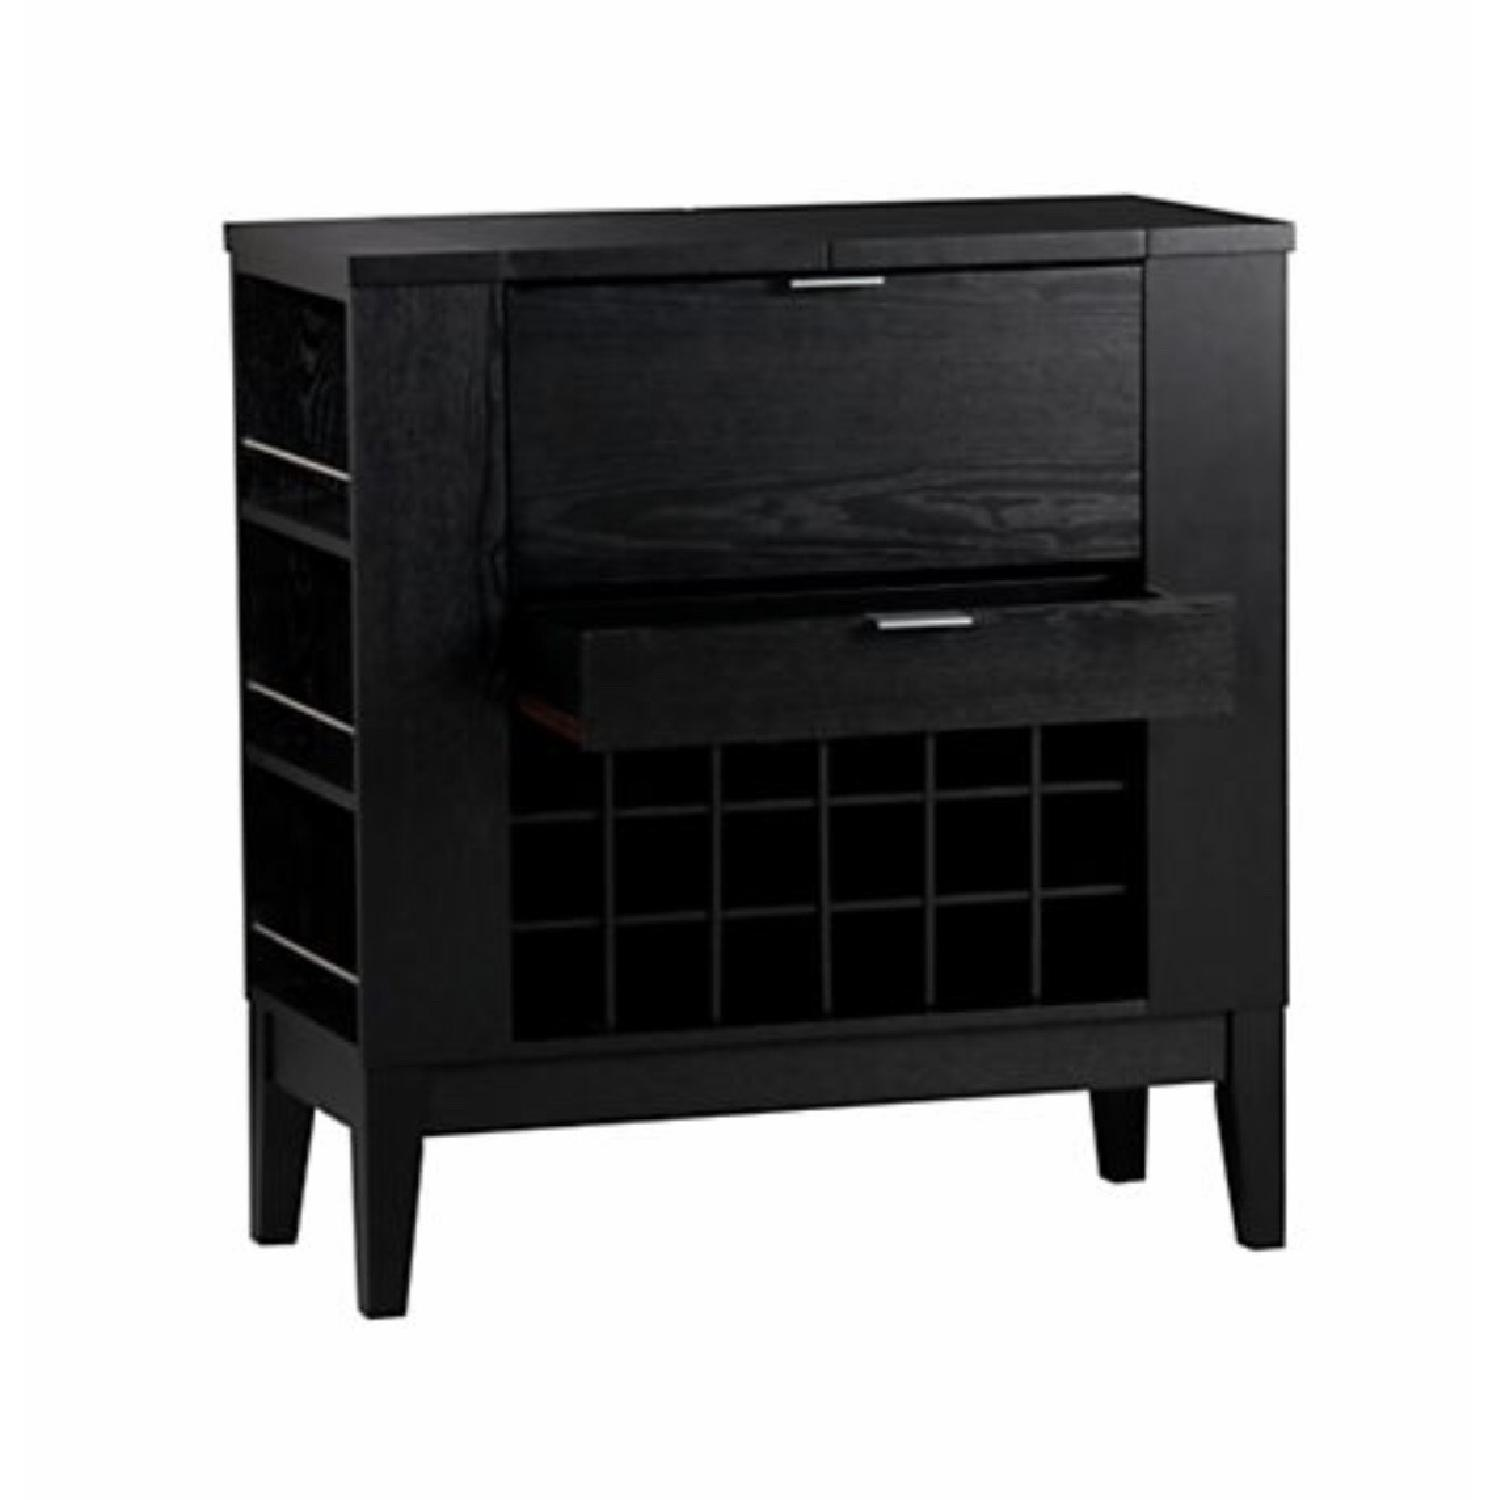 Crate & Barrel Parker Bar Cabinet in Ebony